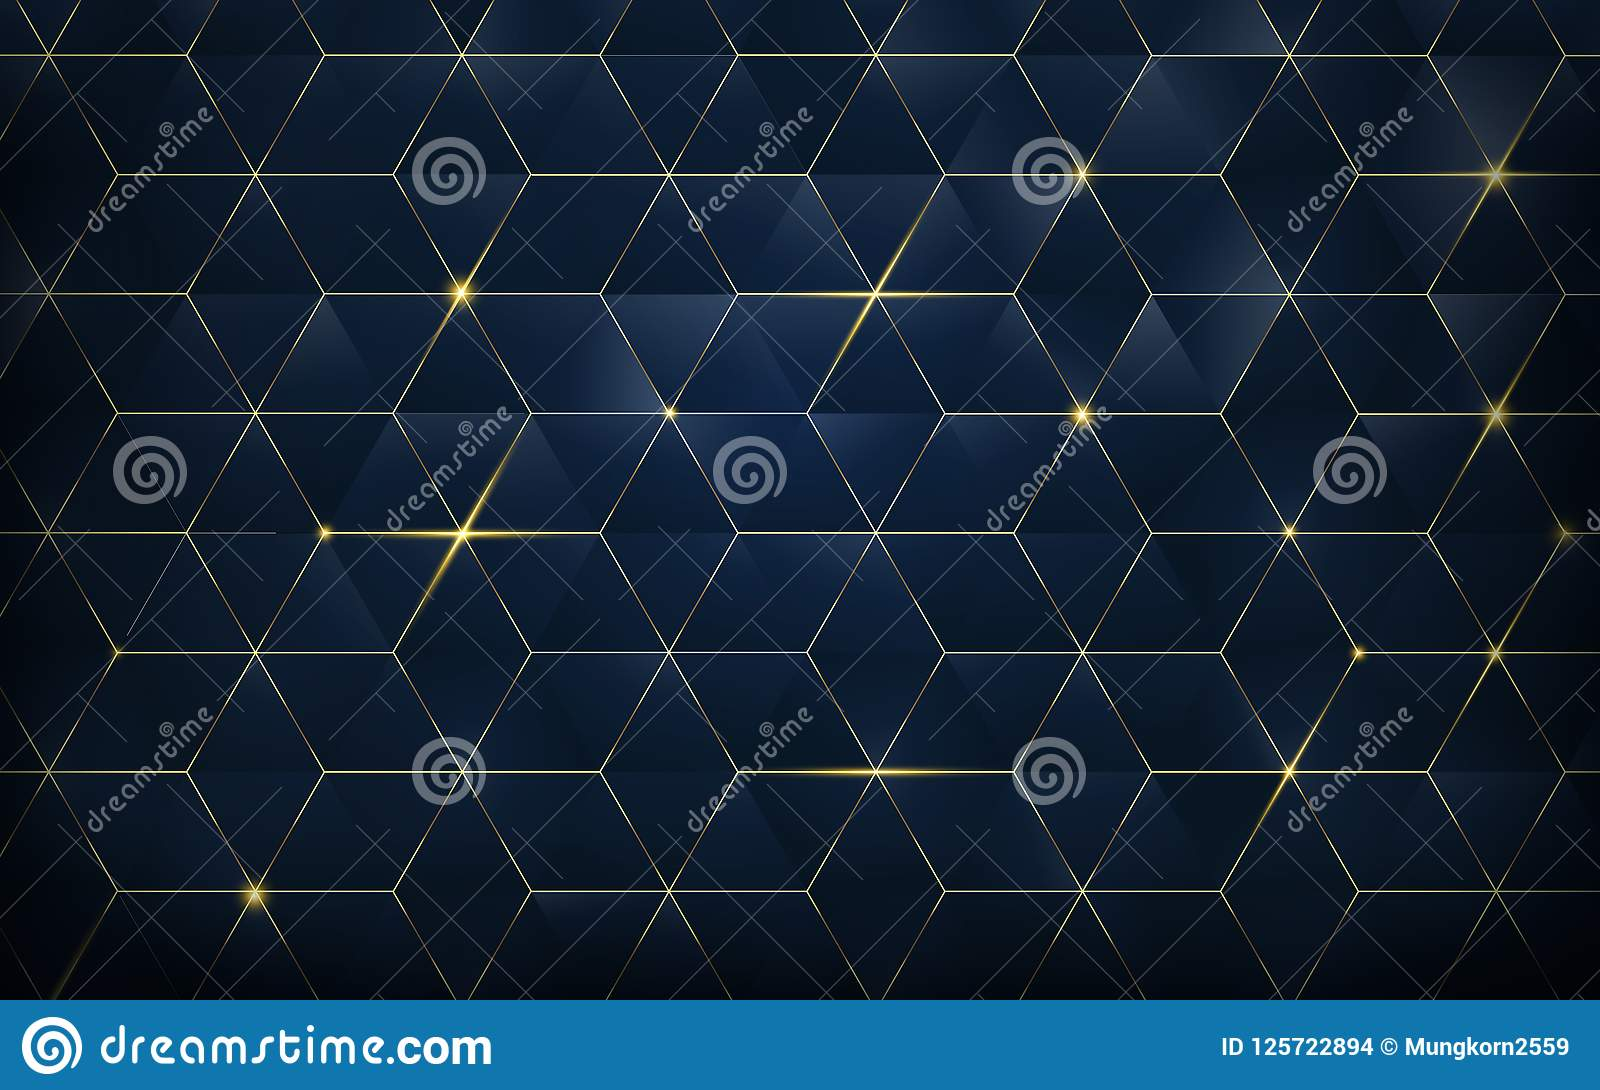 abstract polygonal pattern luxury